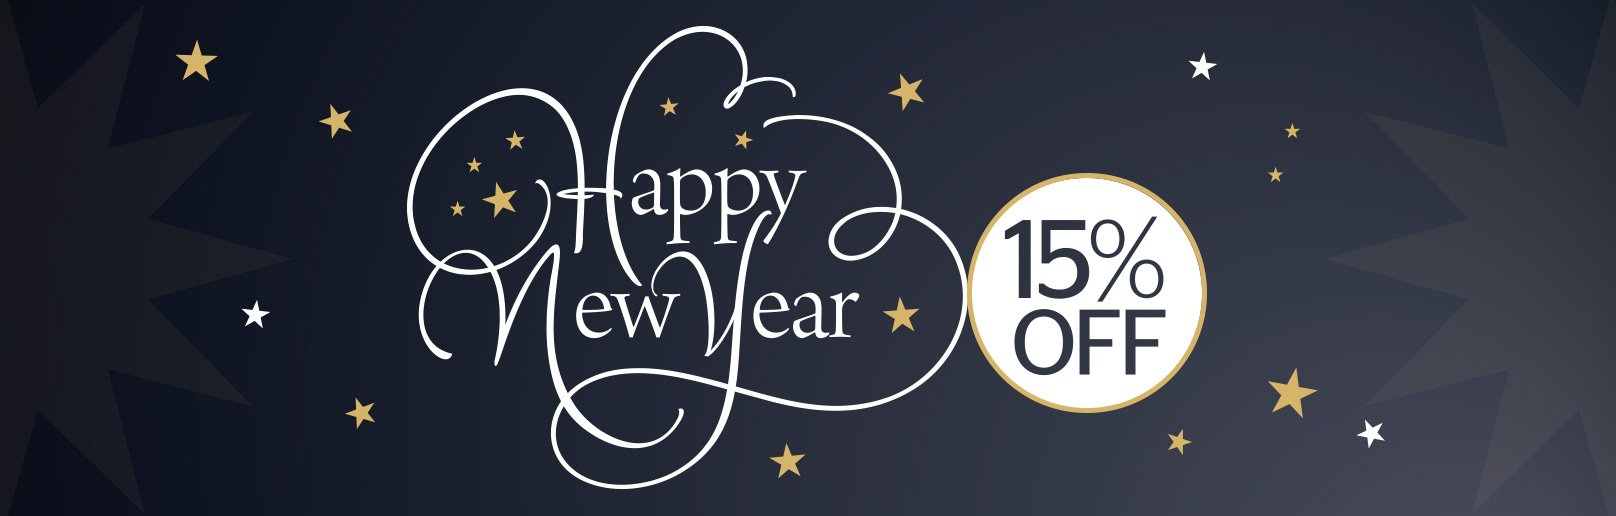 happy new year 15% off salon services during January and February 2018